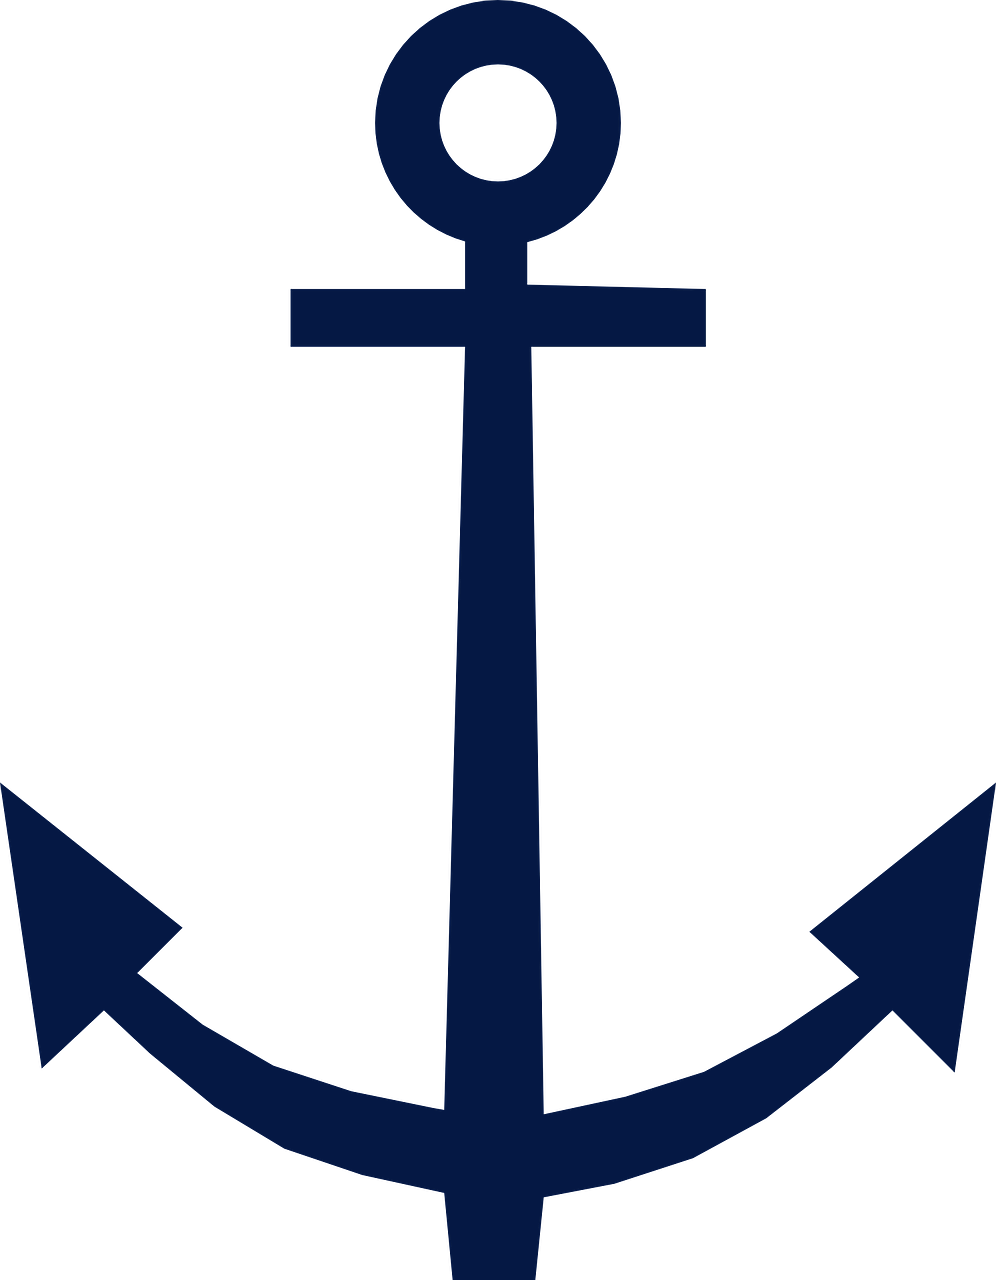 Anchor,blue,symbol,design,nautical.